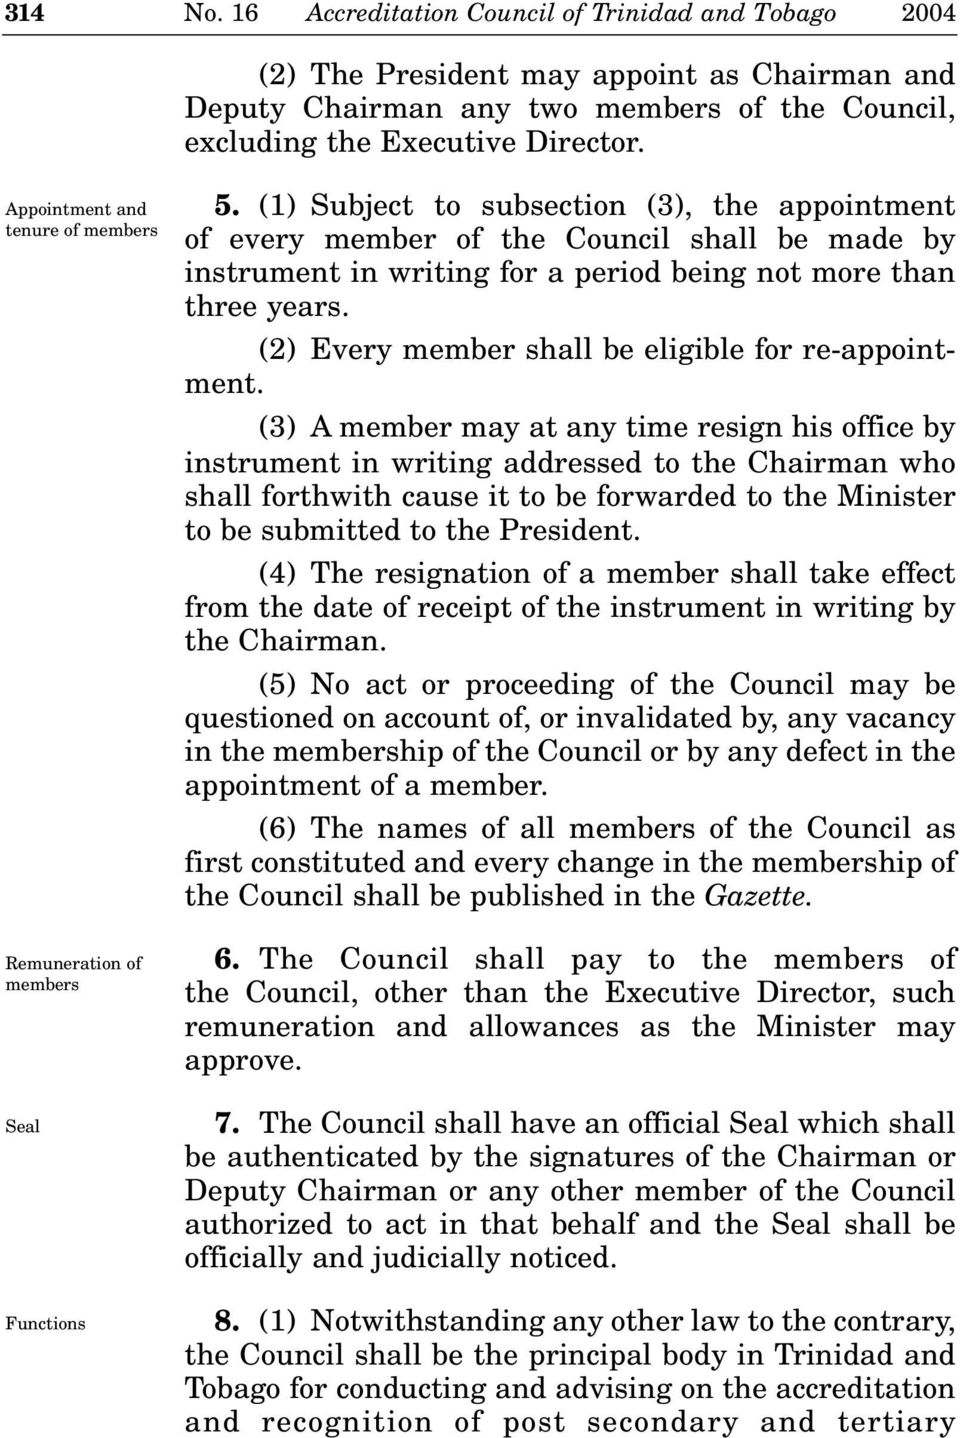 (1) Subject to subsection (3), the appointment of every member of the Council shall be made by instrument in writing for a period being not more than three years.